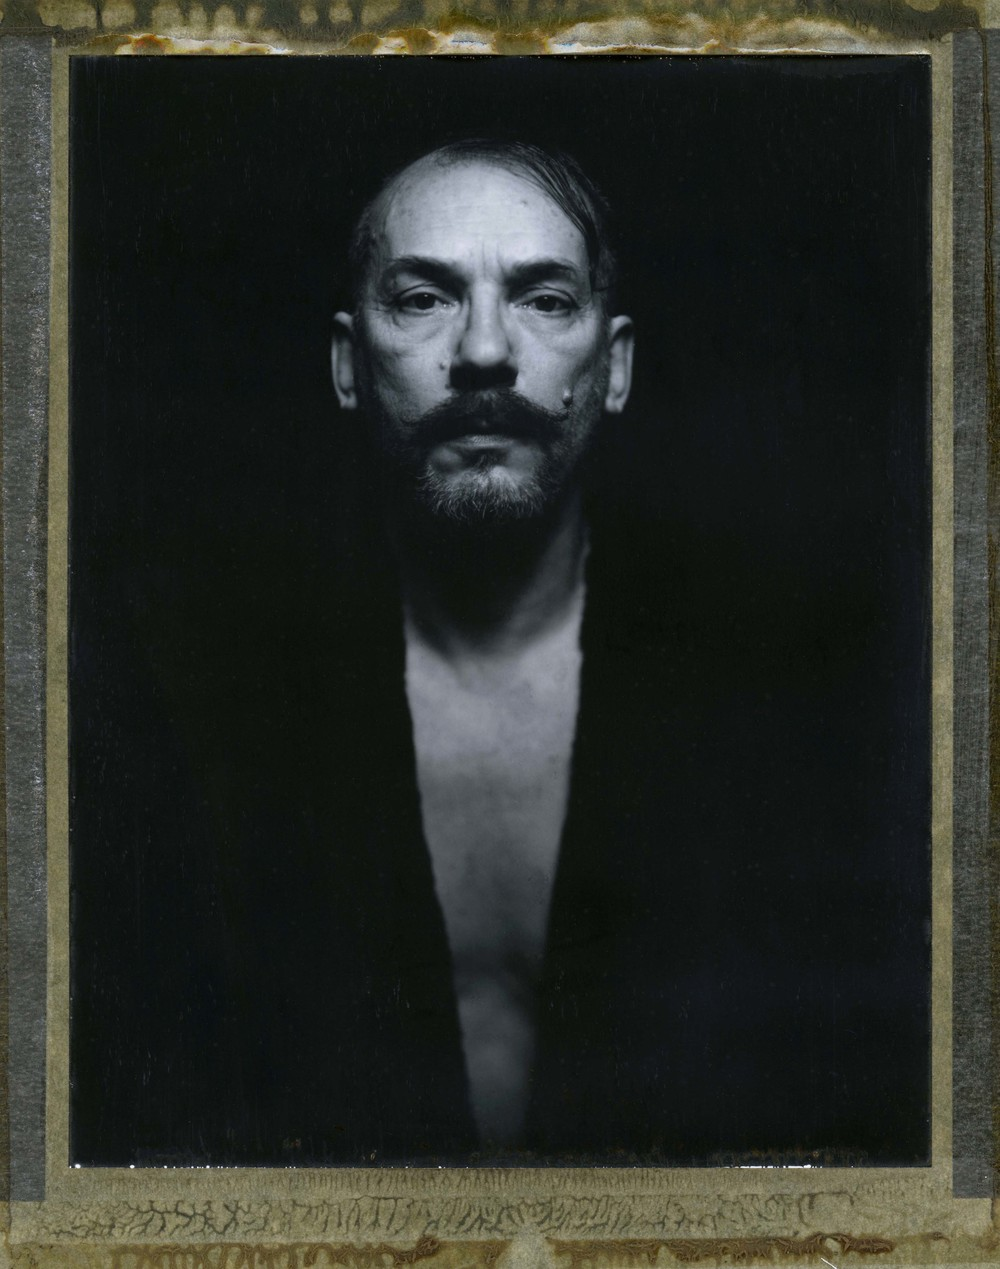 Georges-Alain-2015-Polaroïd 4x5 Film 55 (expired 04).jpg